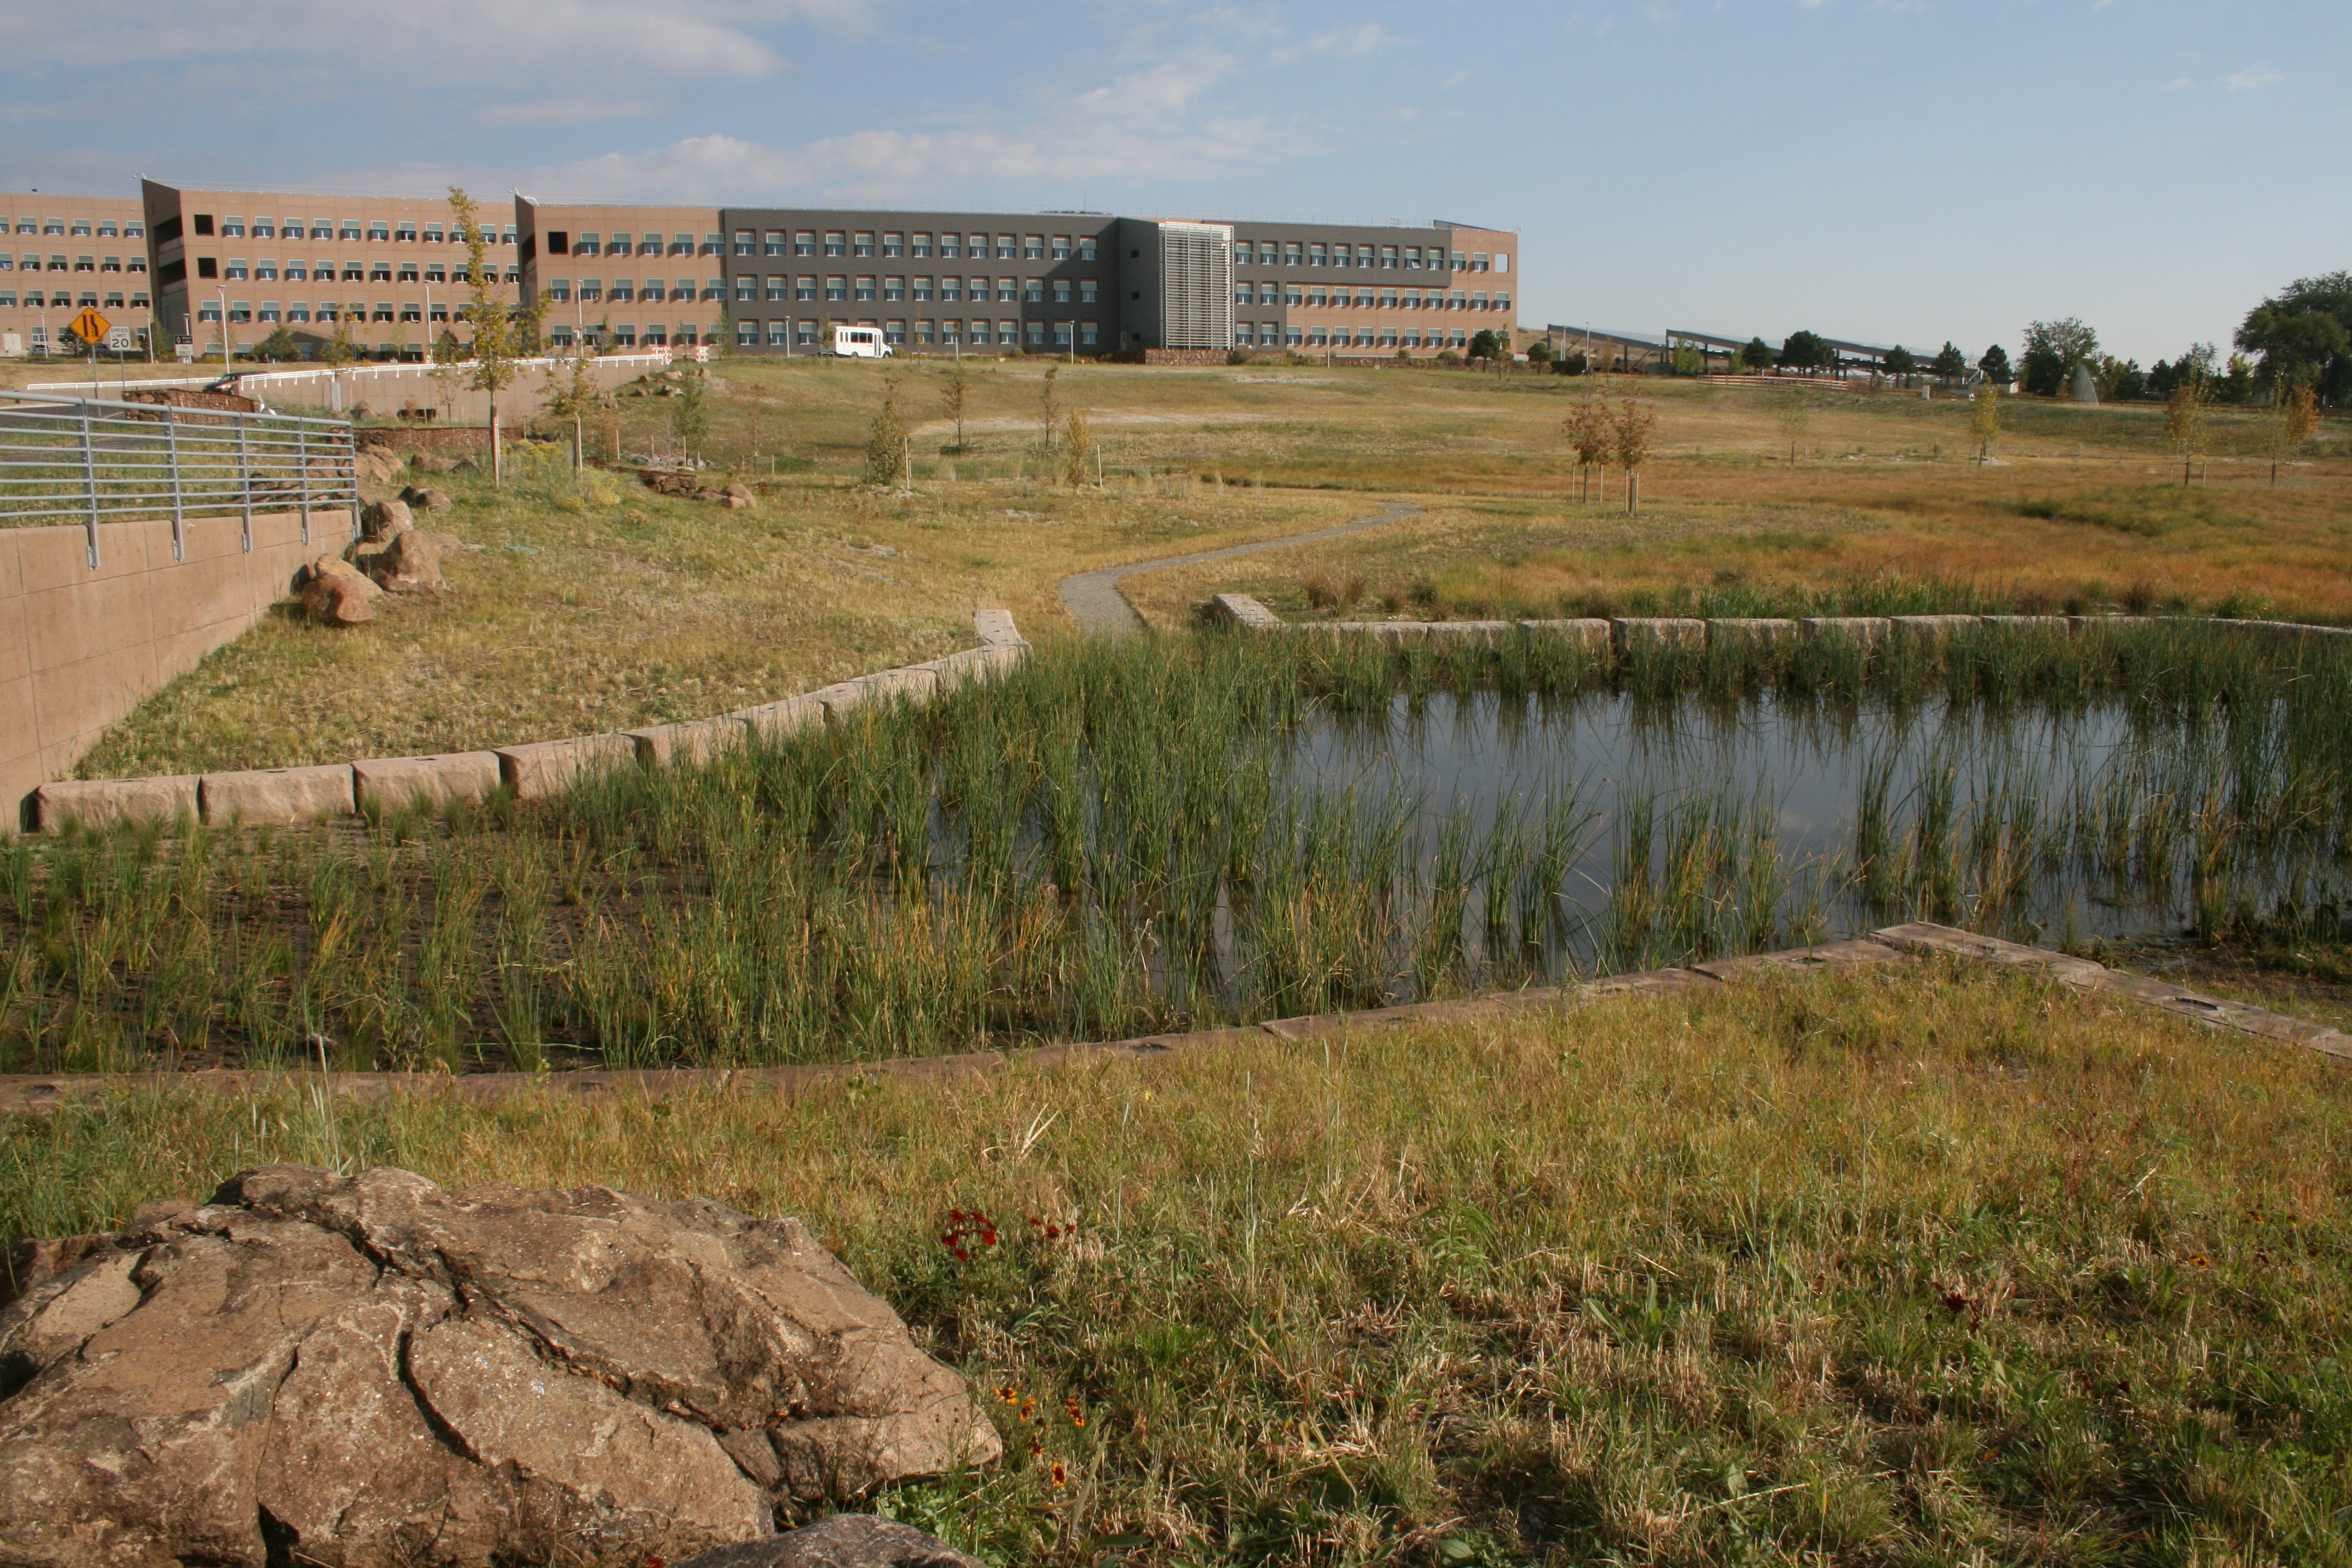 Grasscrete - NREL Detention Pond - 09